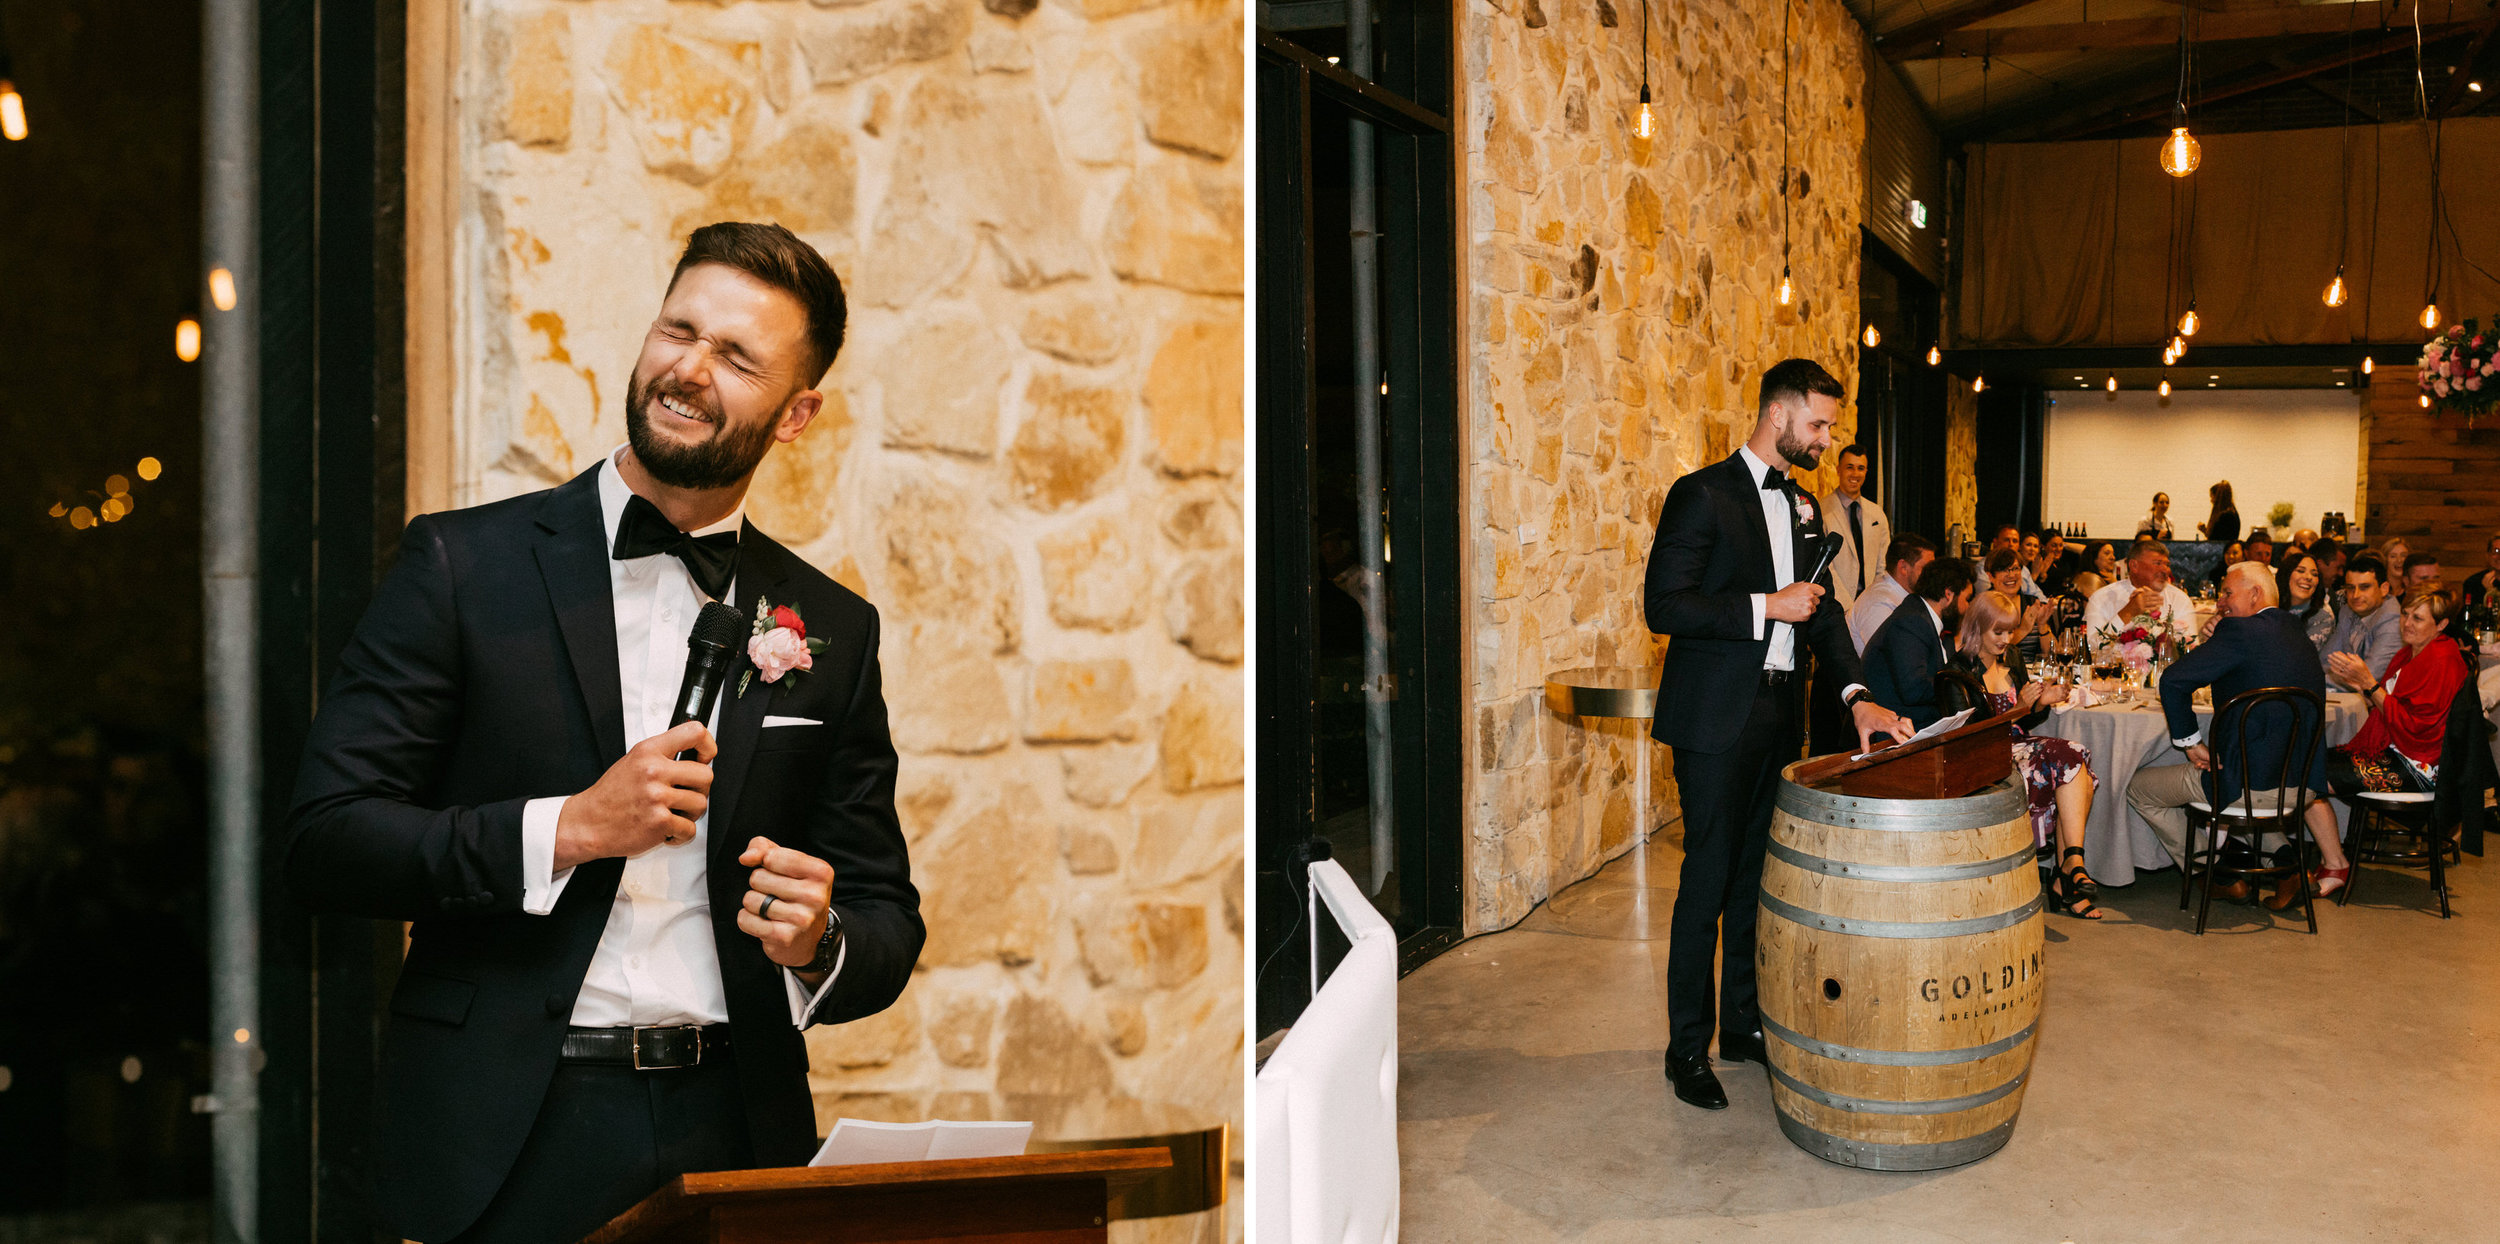 Goldings Winery Wedding SA 193.jpg